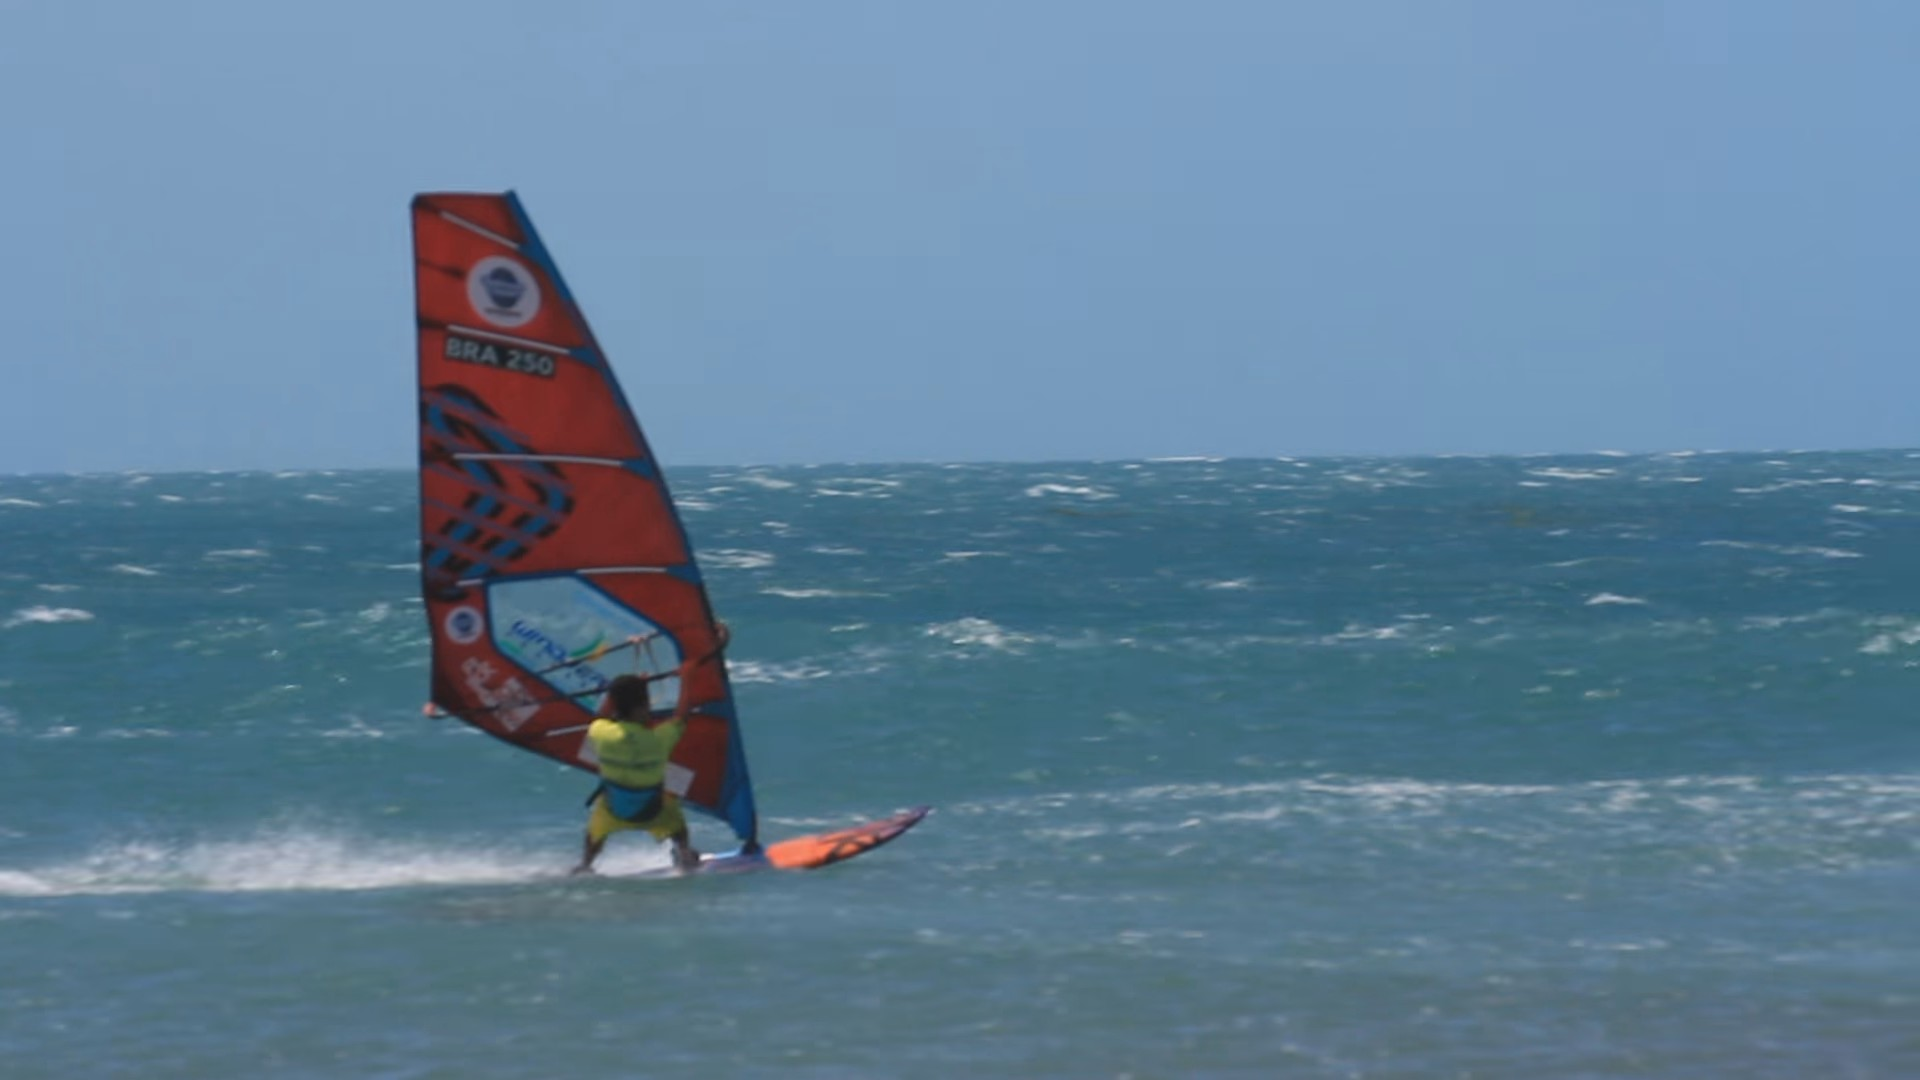 Edvan-Souza-windsurf-double-front-Team-rider-Flikka-boards